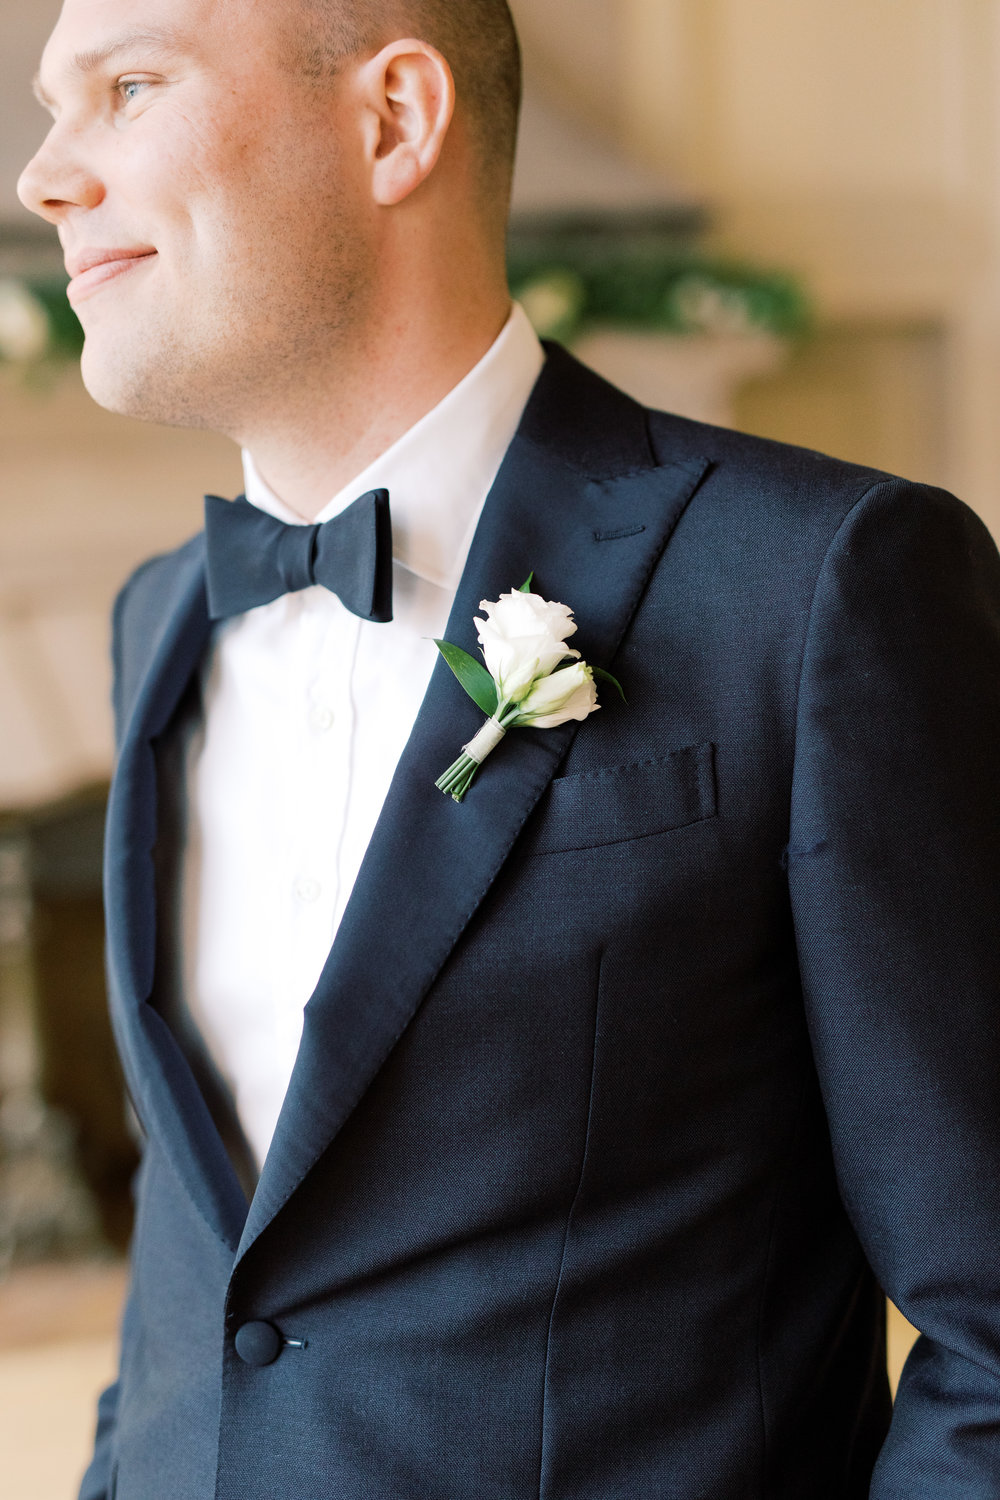 We loved this groom's clean and classic look in black with a simple white boutonniere for this romantic and classic wedding day for their french inspired green and white Cairnwood Estate wedding